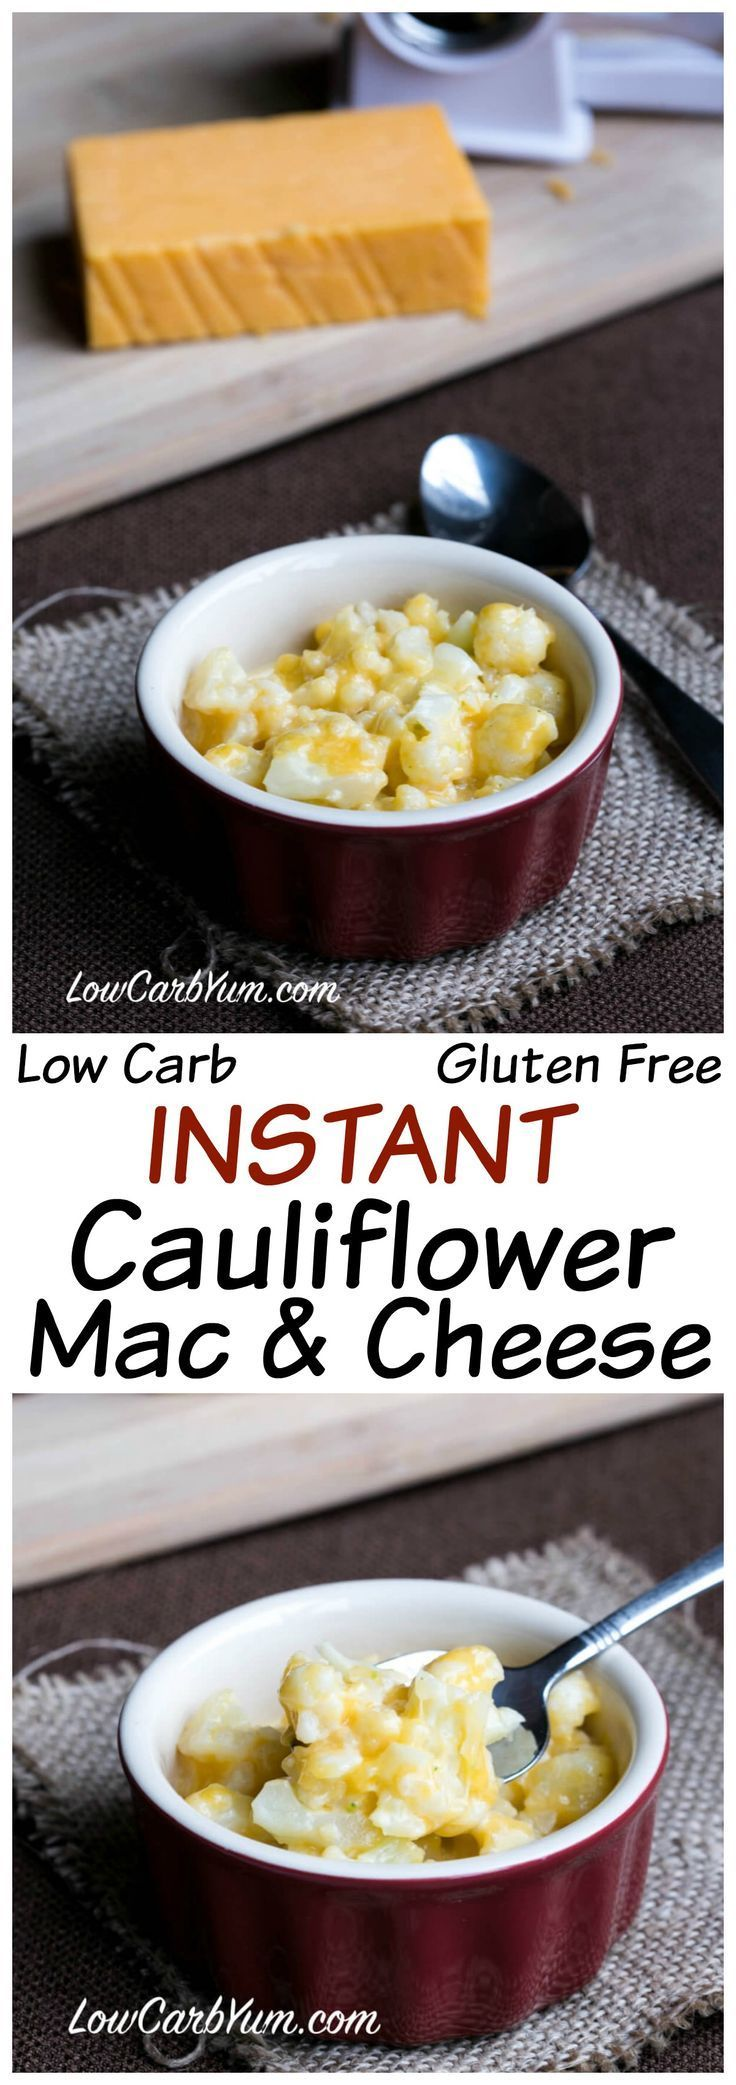 An instant low carb cauliflower mac and cheese recipe that is ready in less than 5 minutes. This quick cauli mac and cheese only requires 3 ingredients! Gluten free keto